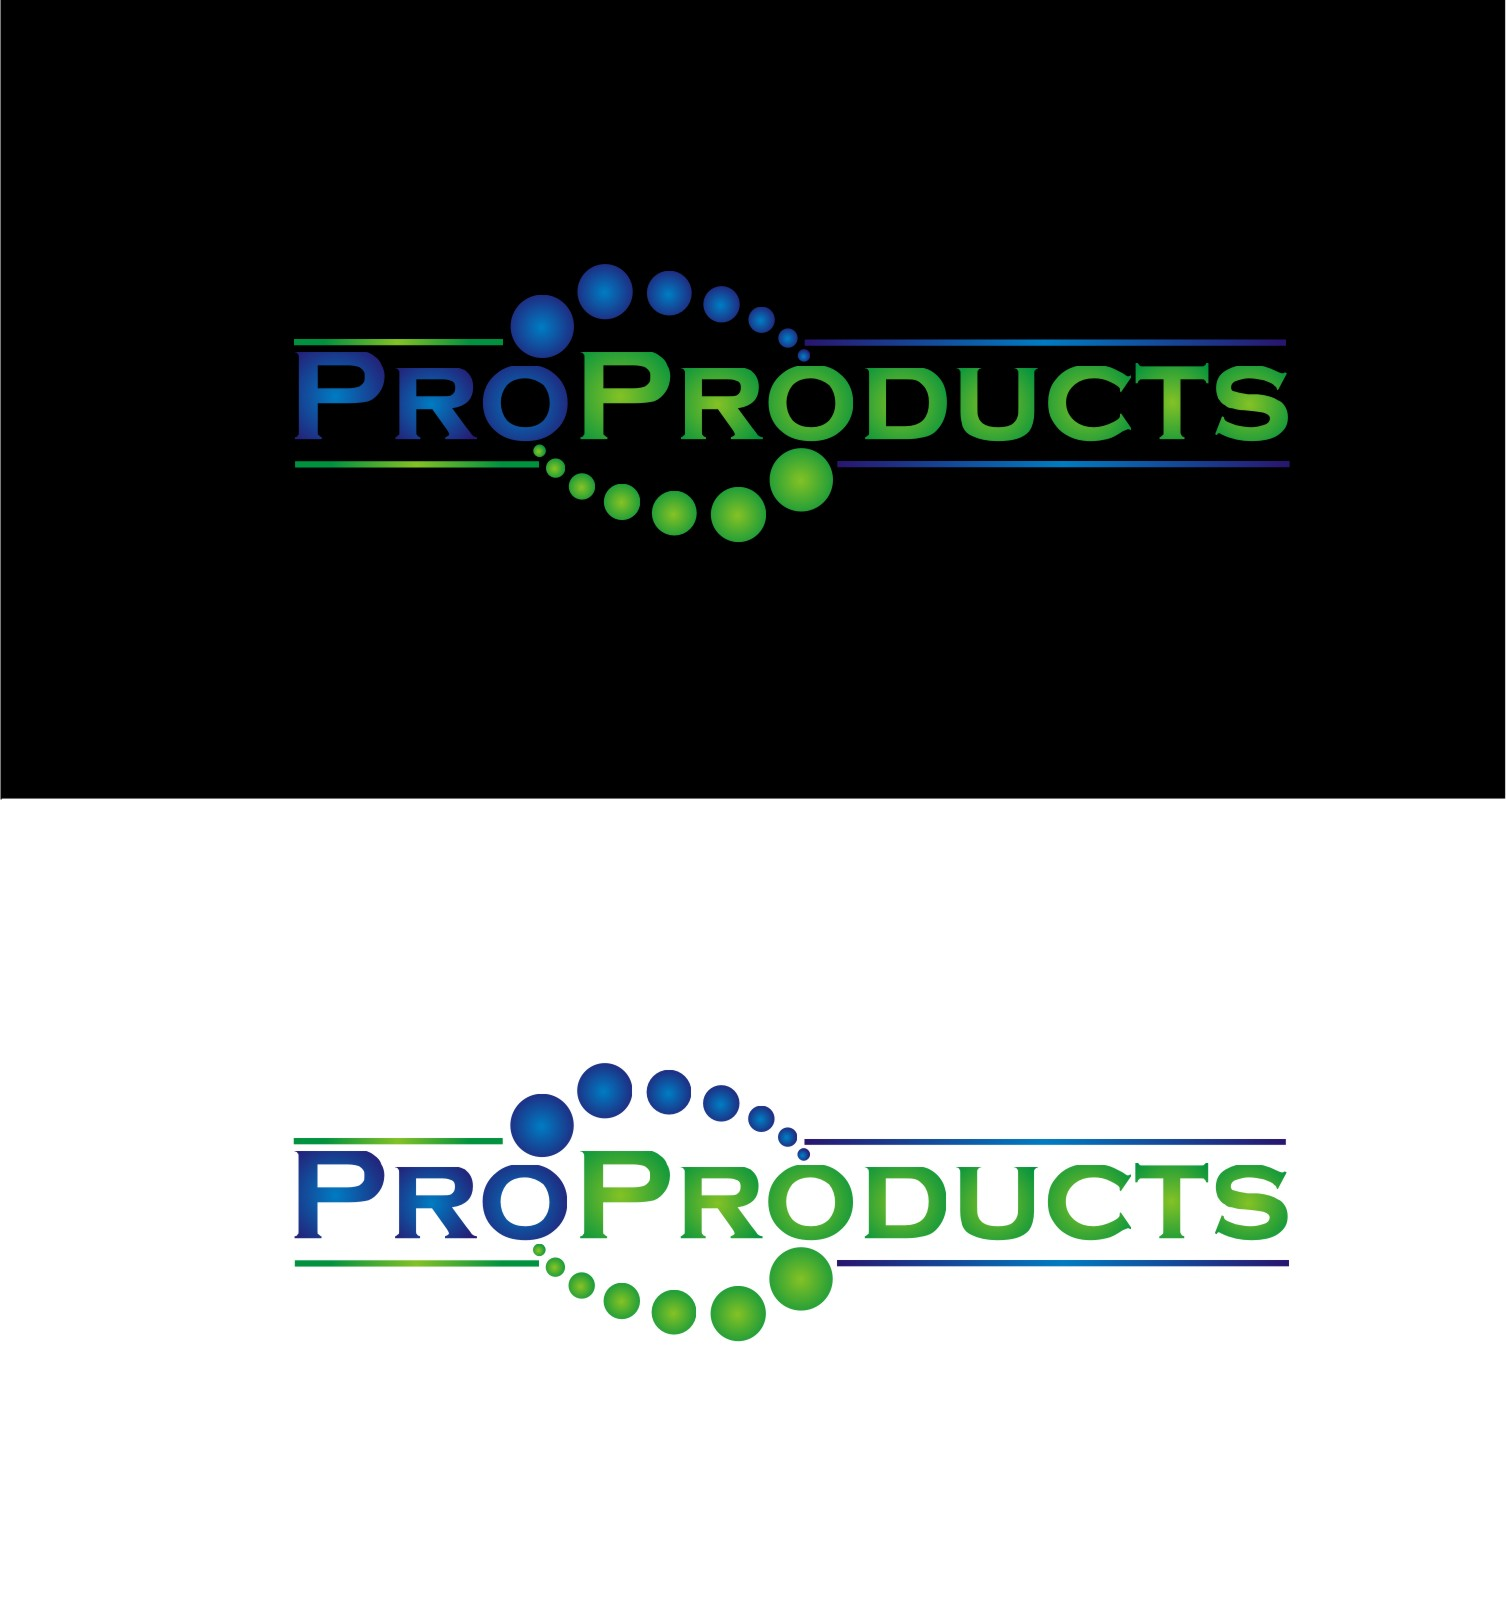 Logo Design by Yuda Hermawan - Entry No. 24 in the Logo Design Contest Fun yet Professional Logo Design for ProProducts.